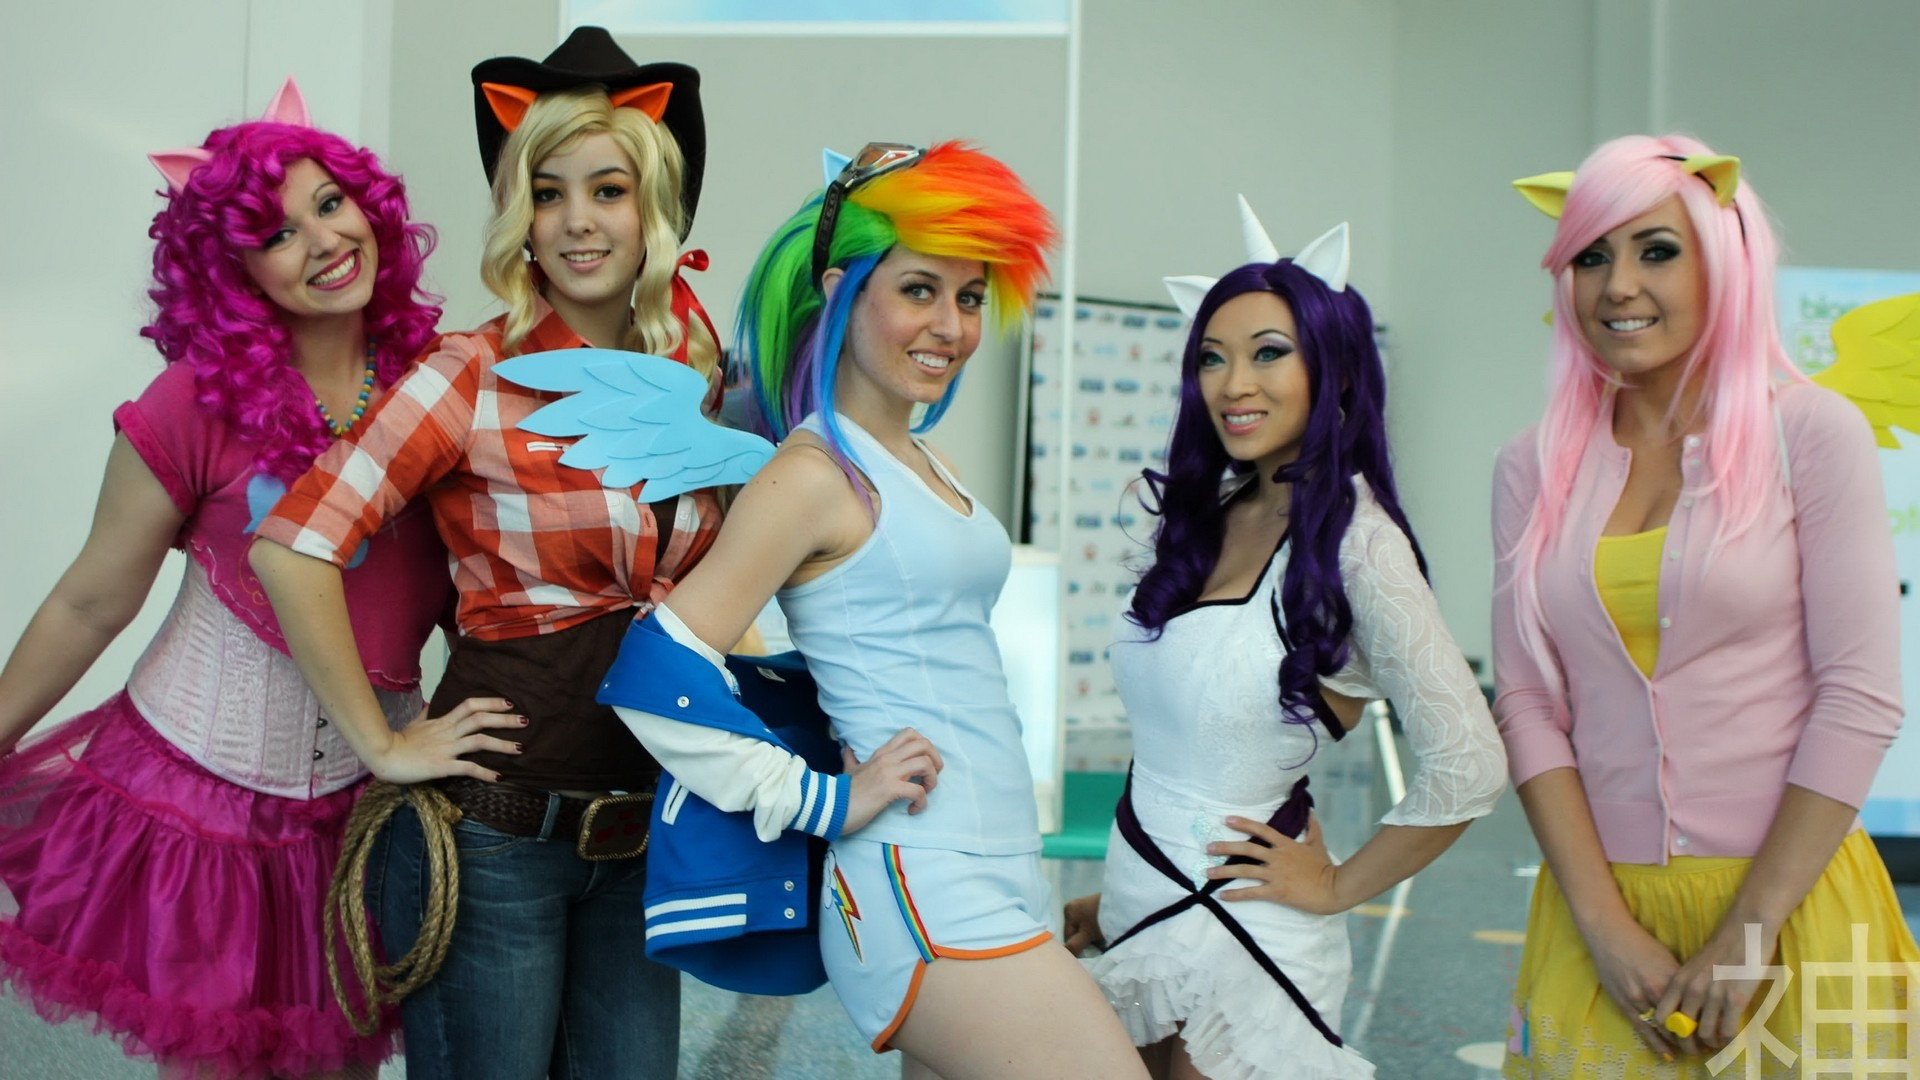 The Rise Of Fangirls Bronies And My Little Pony - The New York Comic Con Interviews (VIDEO) - Bleeding Cool News And Rumors  sc 1 st  Bleeding Cool & The Rise Of Fangirls Bronies And My Little Pony - The New York ...